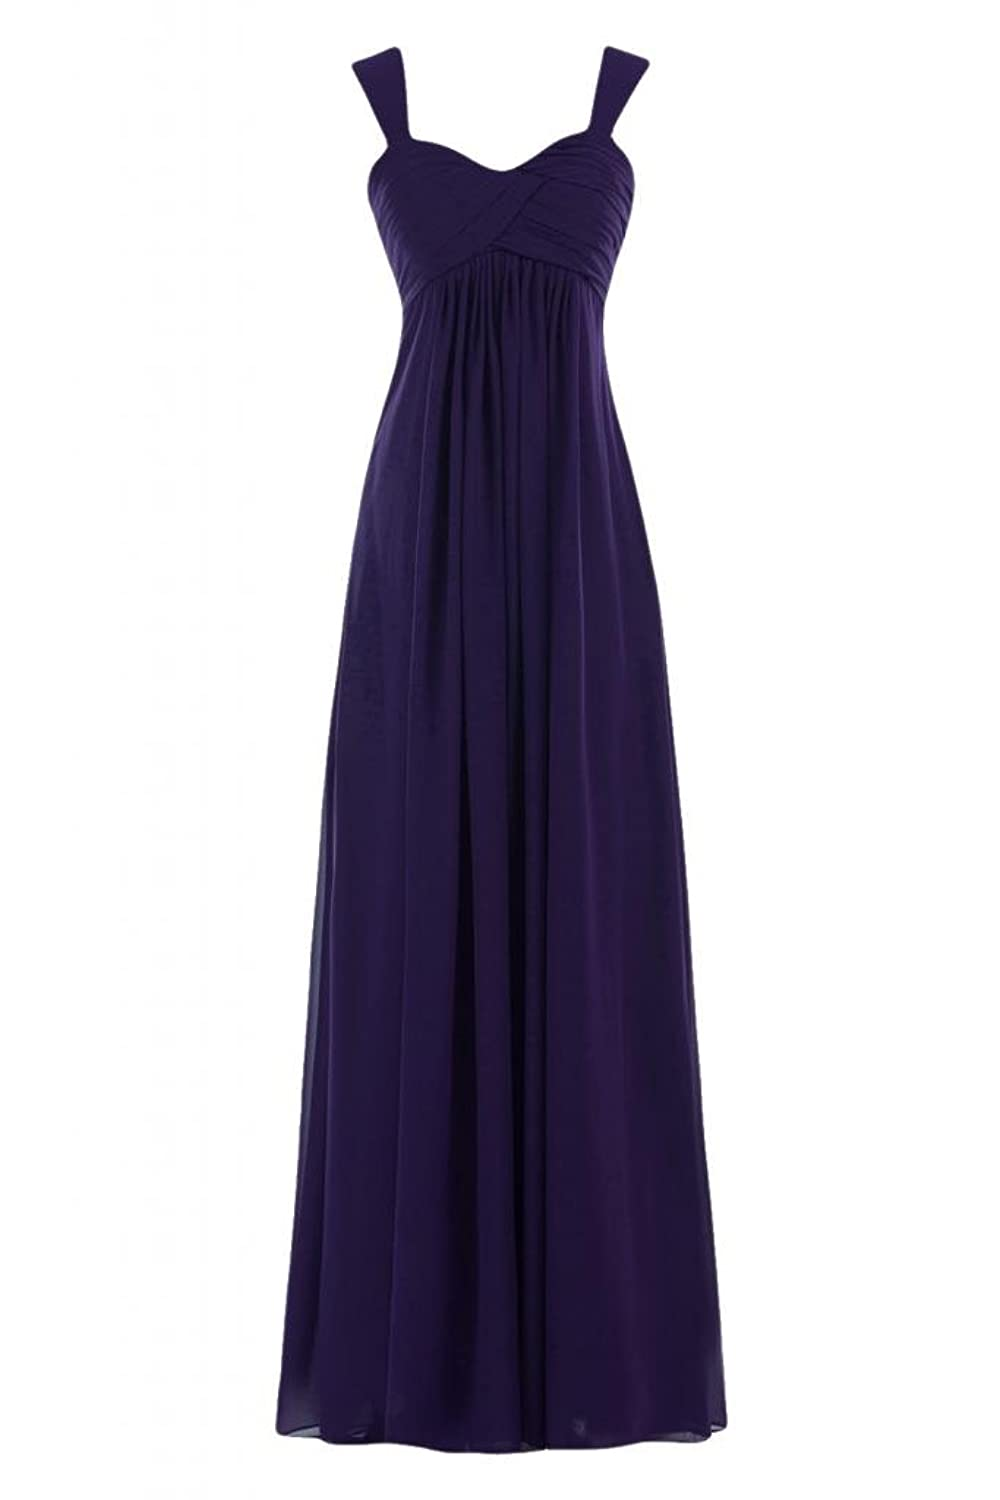 Sunvary Graceful 2014 Pageant Evening Dress Maxi Bridesmaid Gowns Plus Size Double Straps